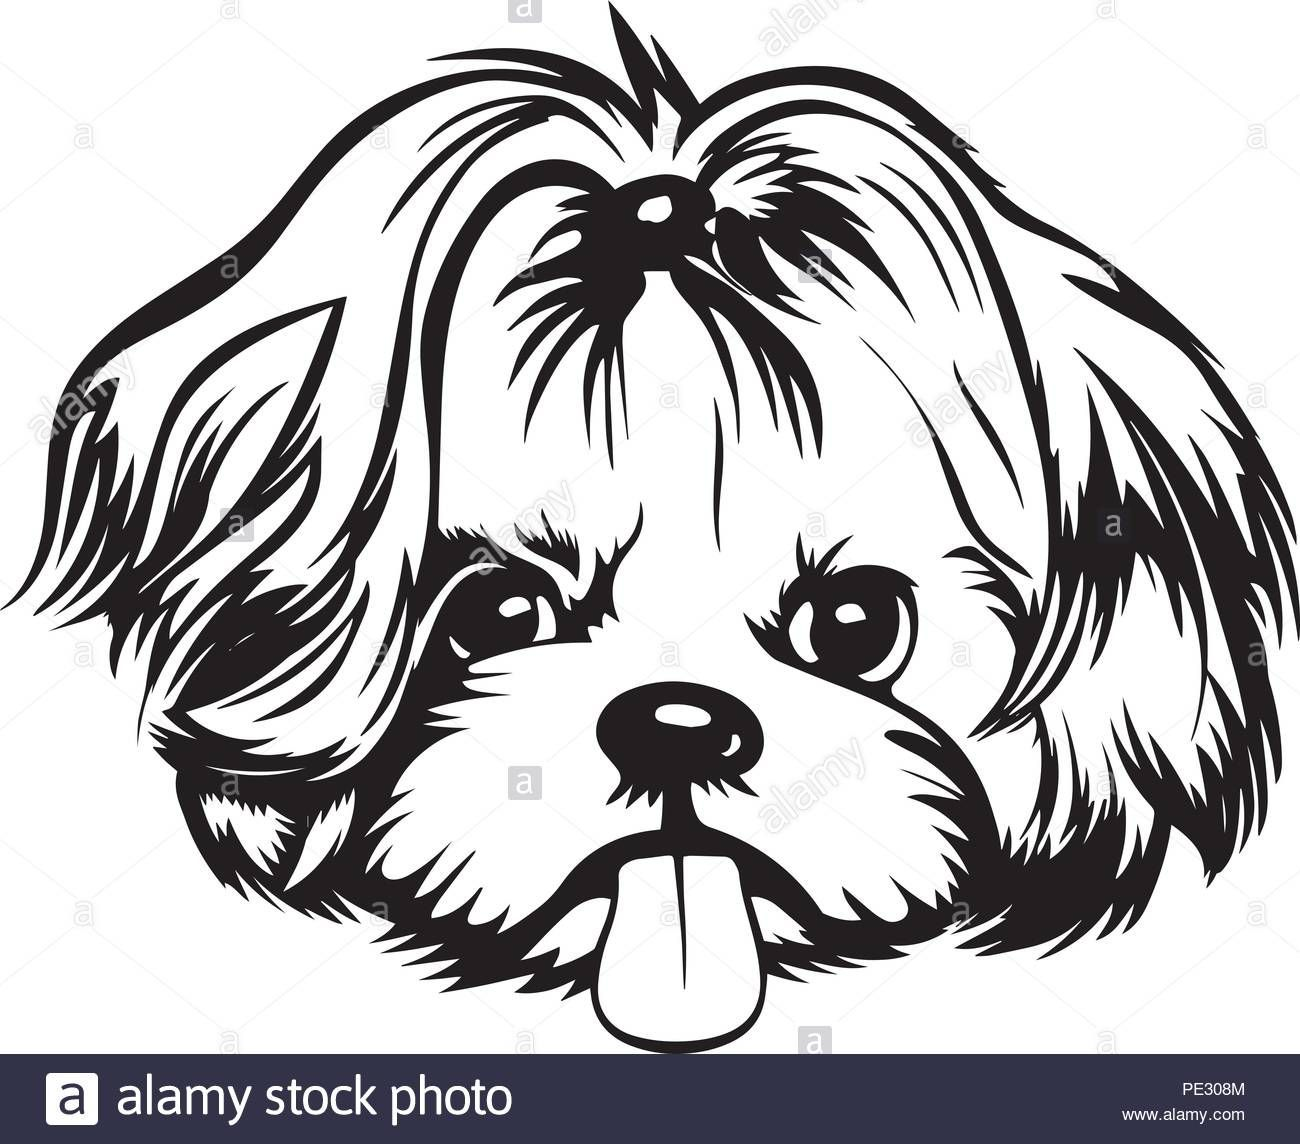 Download This Stock Vector Shih Tzu Dog Breed Pet Puppy Isolated